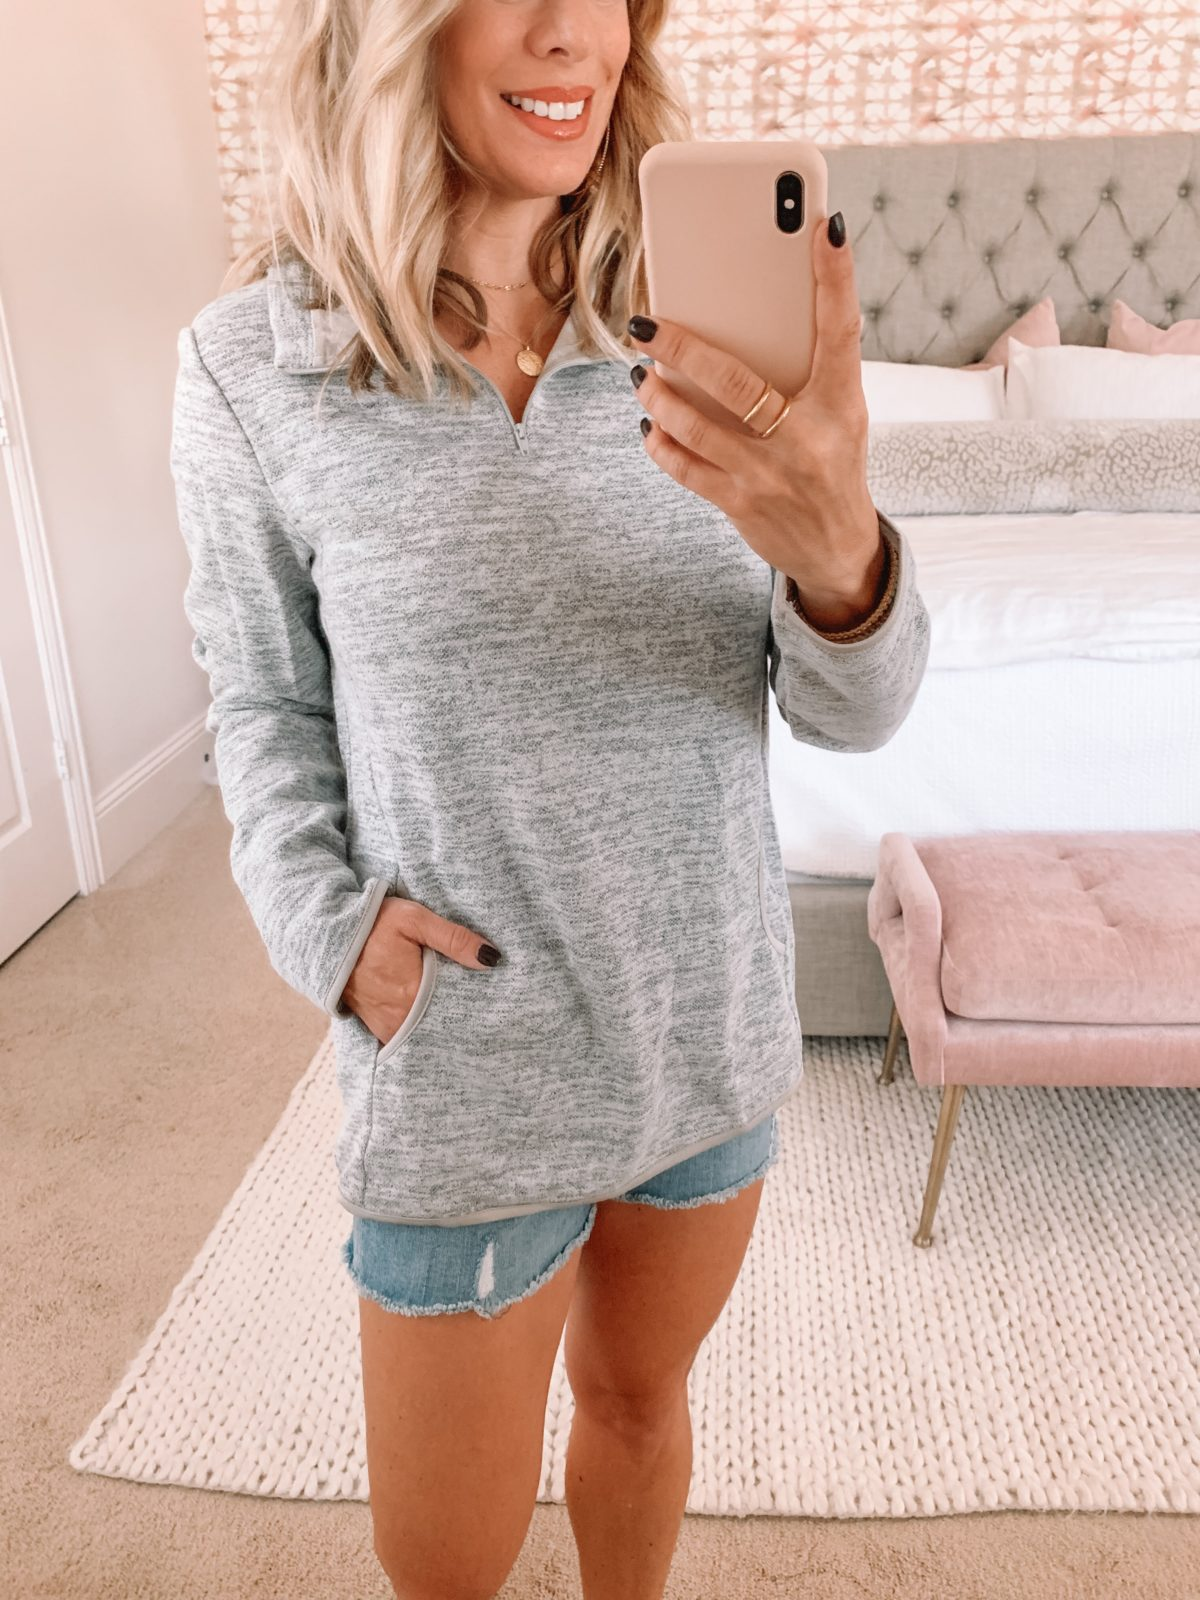 Amazon Fashion Faves, Zipper Hoodie, Denim Shorts, Studded Sneakers